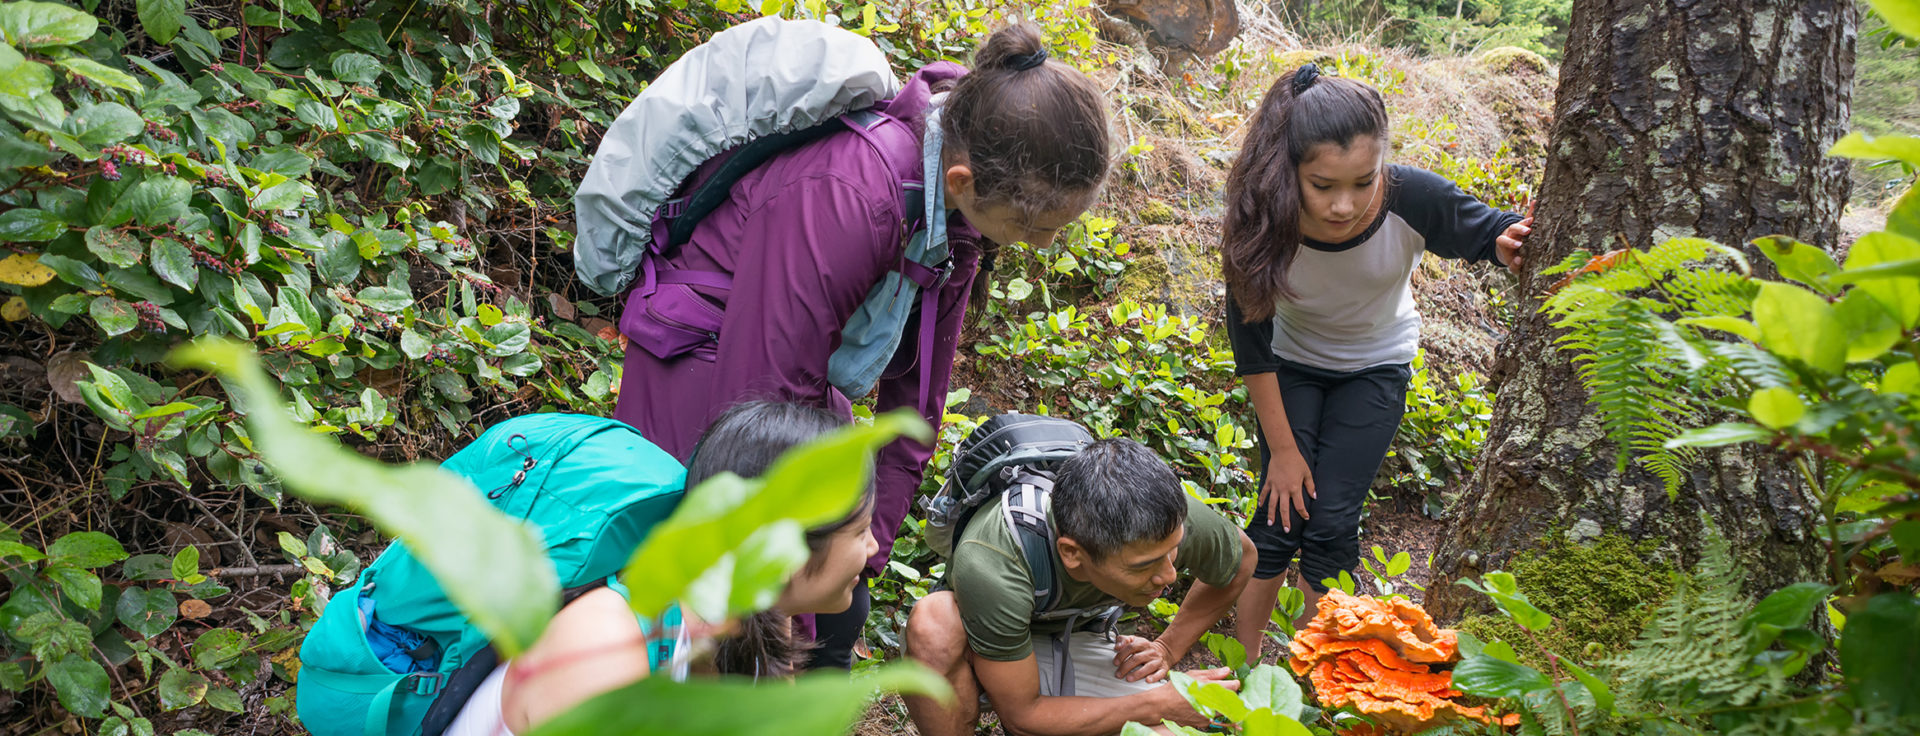 An extended family of hikers with backpacks stop to look at an edible mushroom (Laetiporus Cincinnatus, commonly known as Chicken of the Woods) during a hike through a remote wilderness park